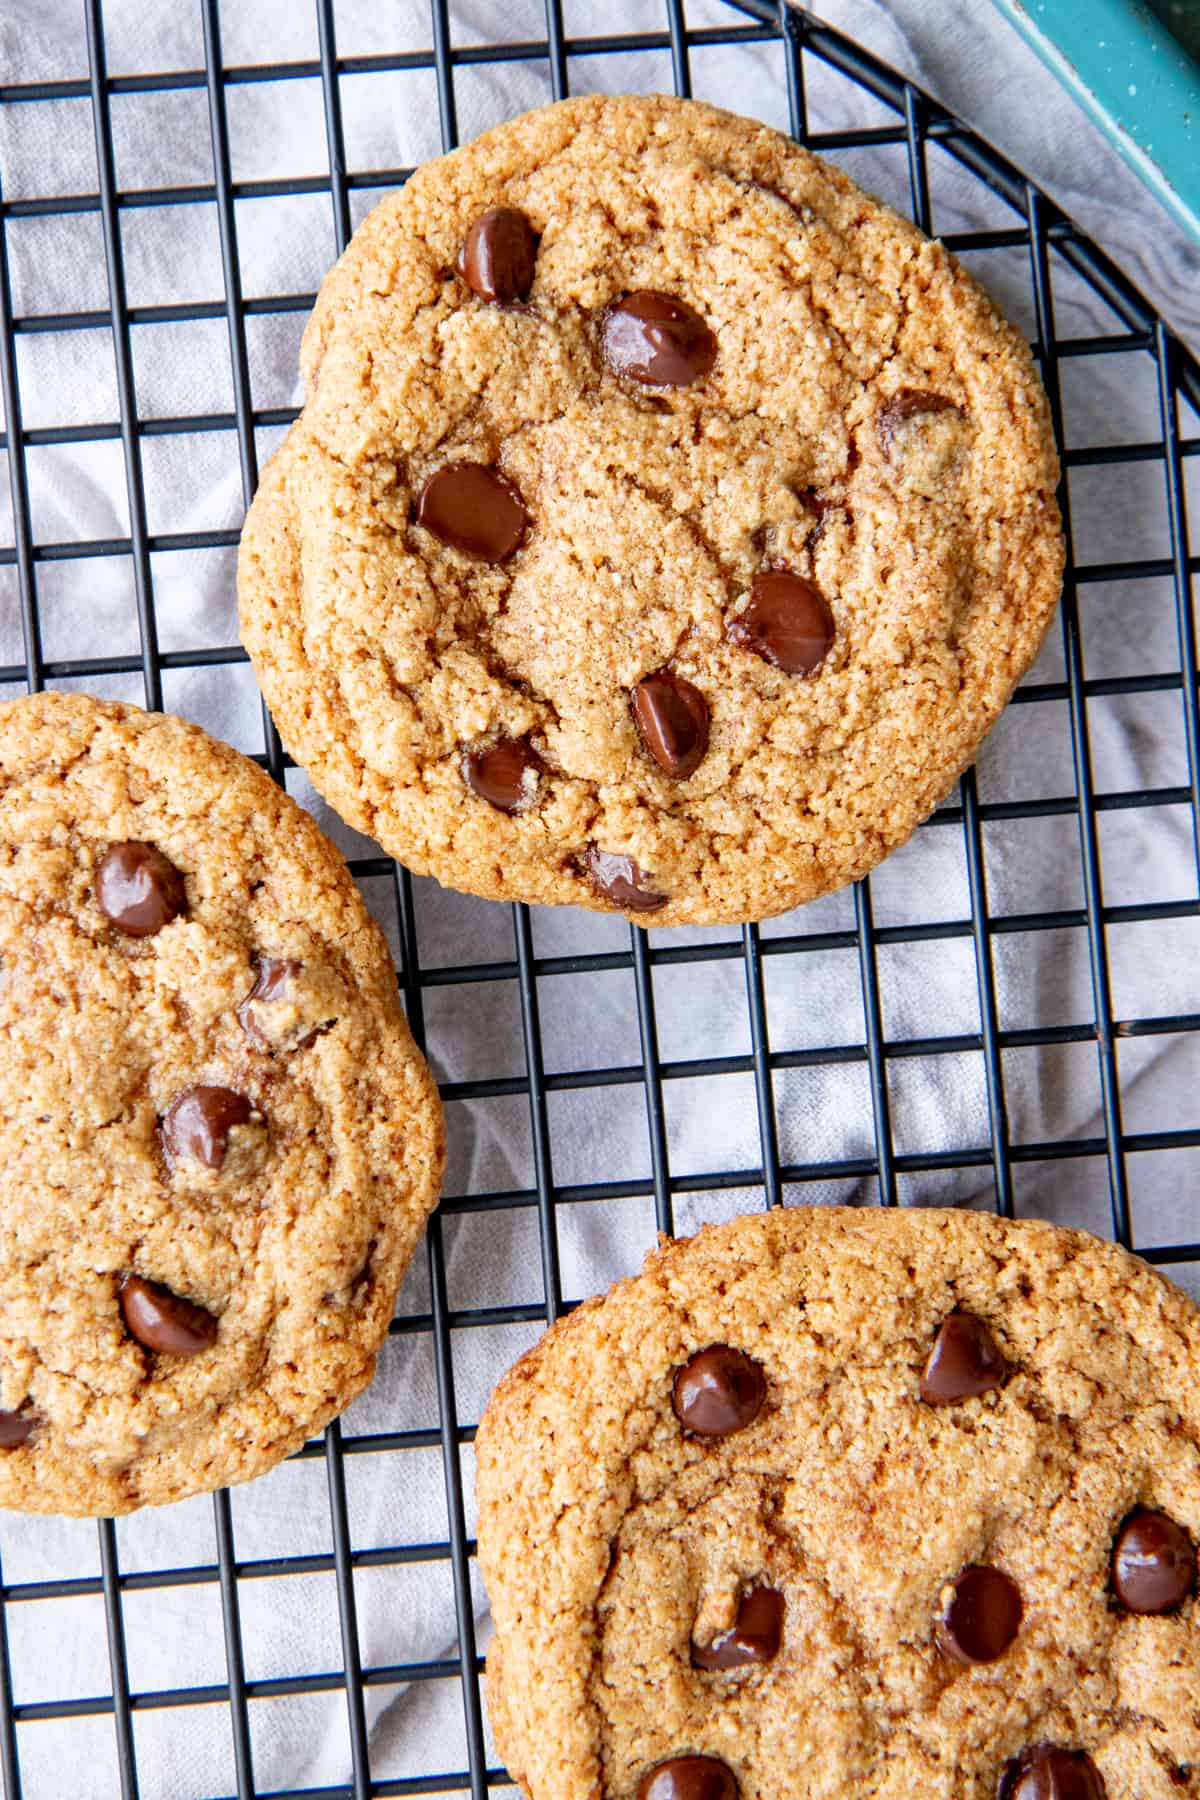 Chocolate chip cookies sit on a wire baking rack.